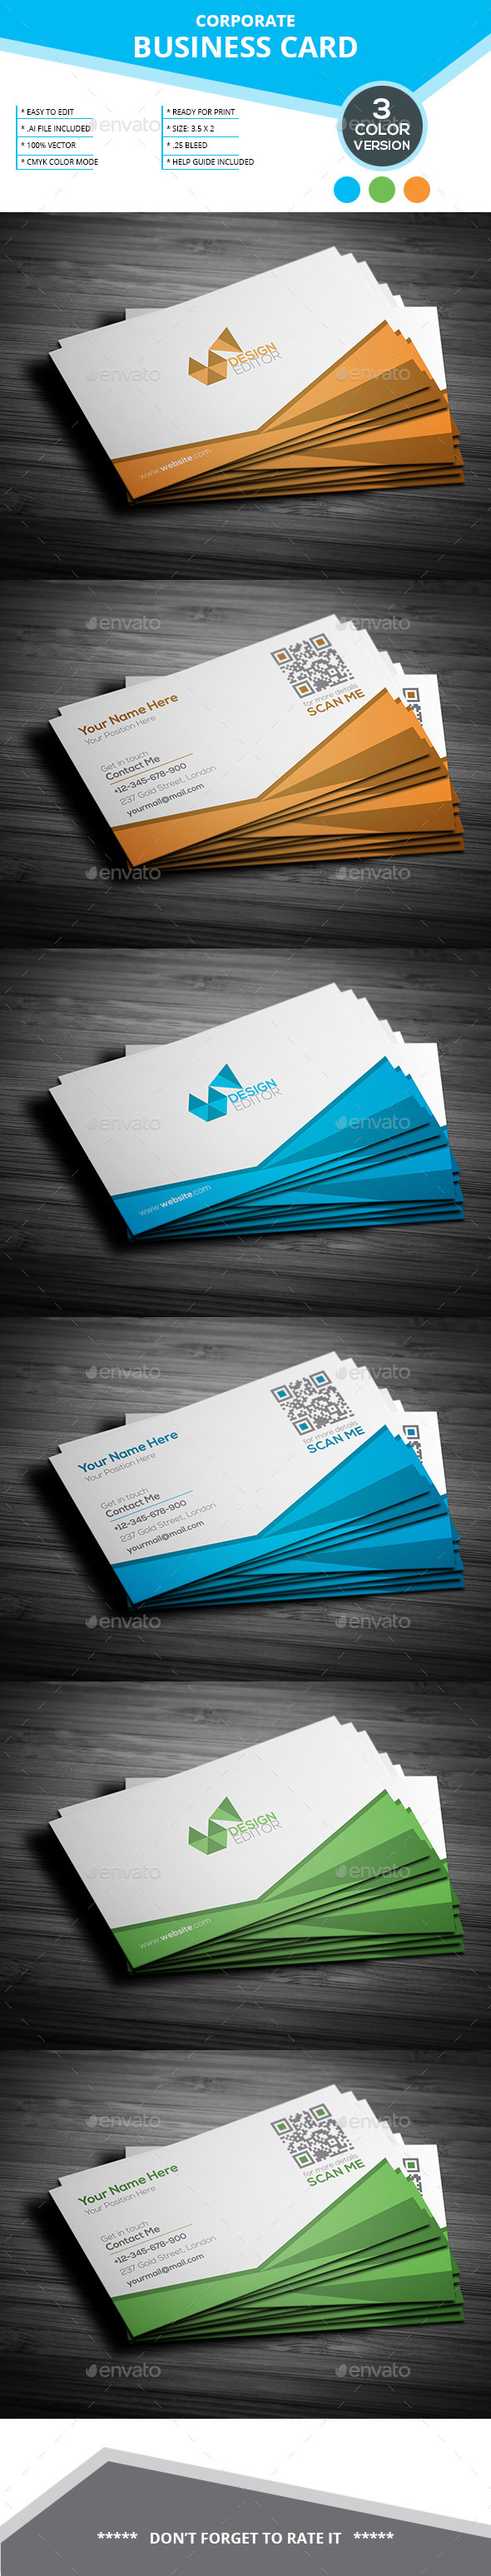 Corporate Business Card _ SL _ 31 - Business Cards Print Templates